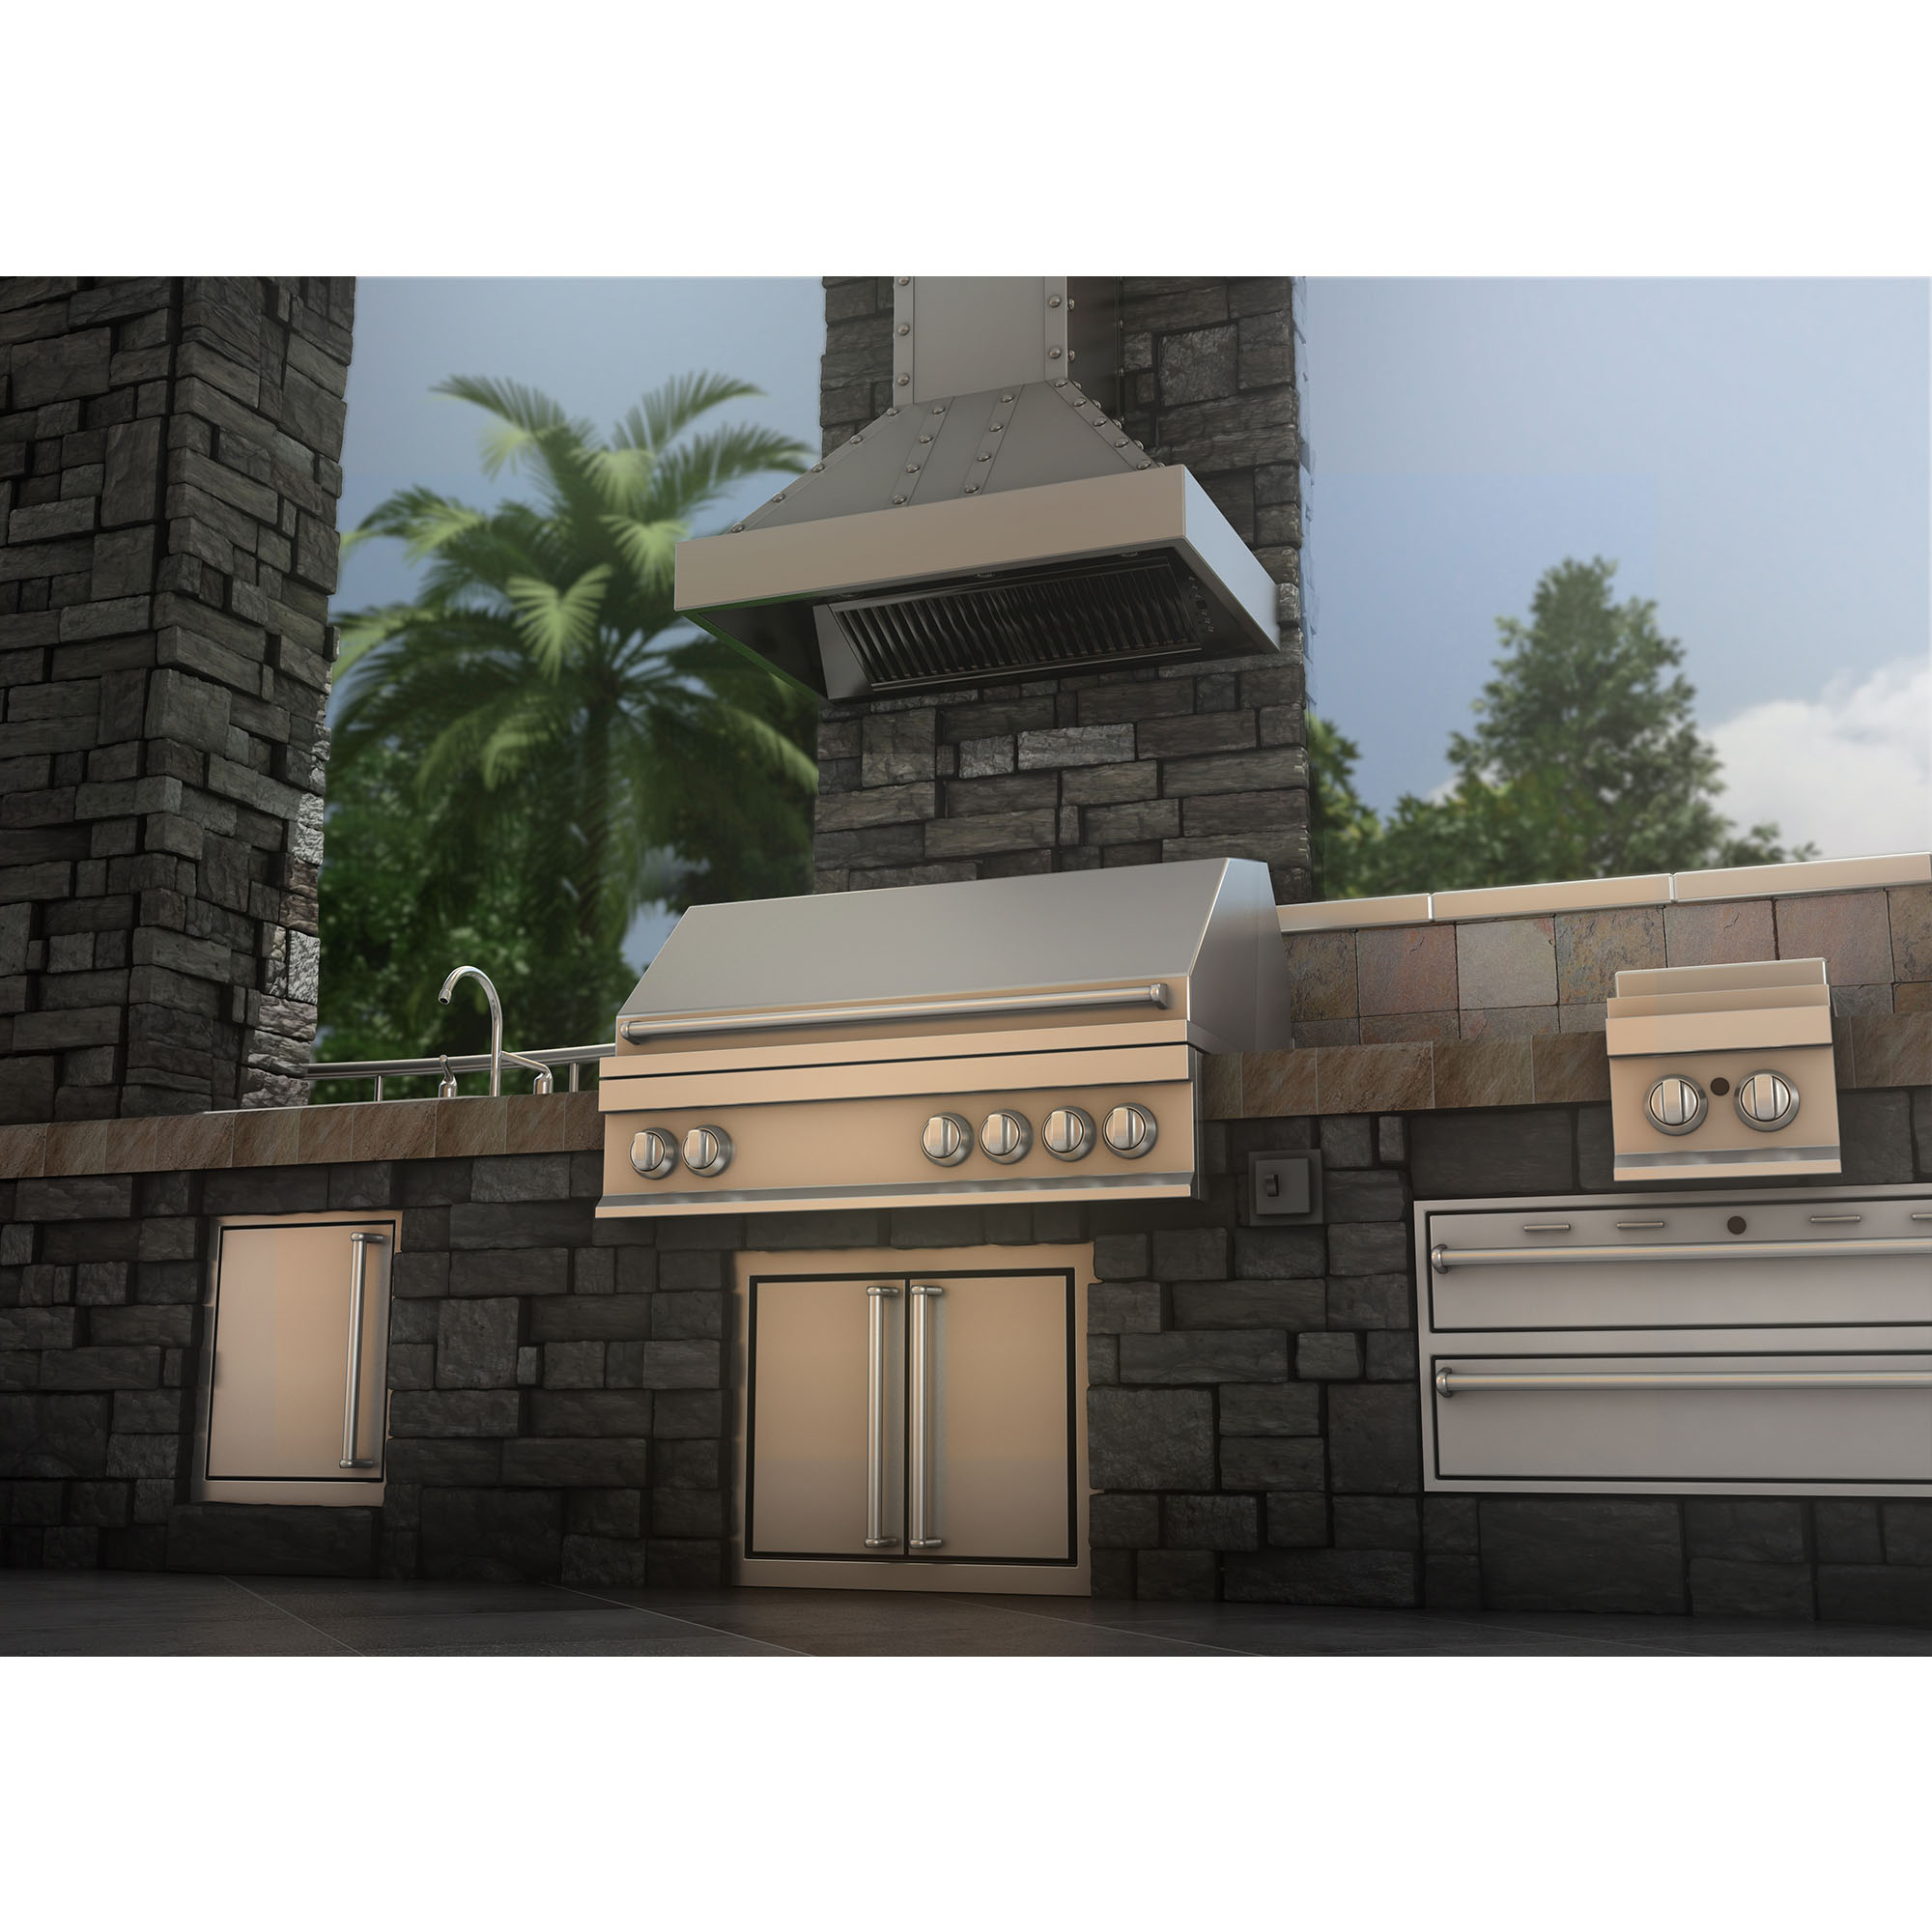 655_4SSSS_New_Outdoor_Kitchen_Wall_Hoods_Cam_03.jpg